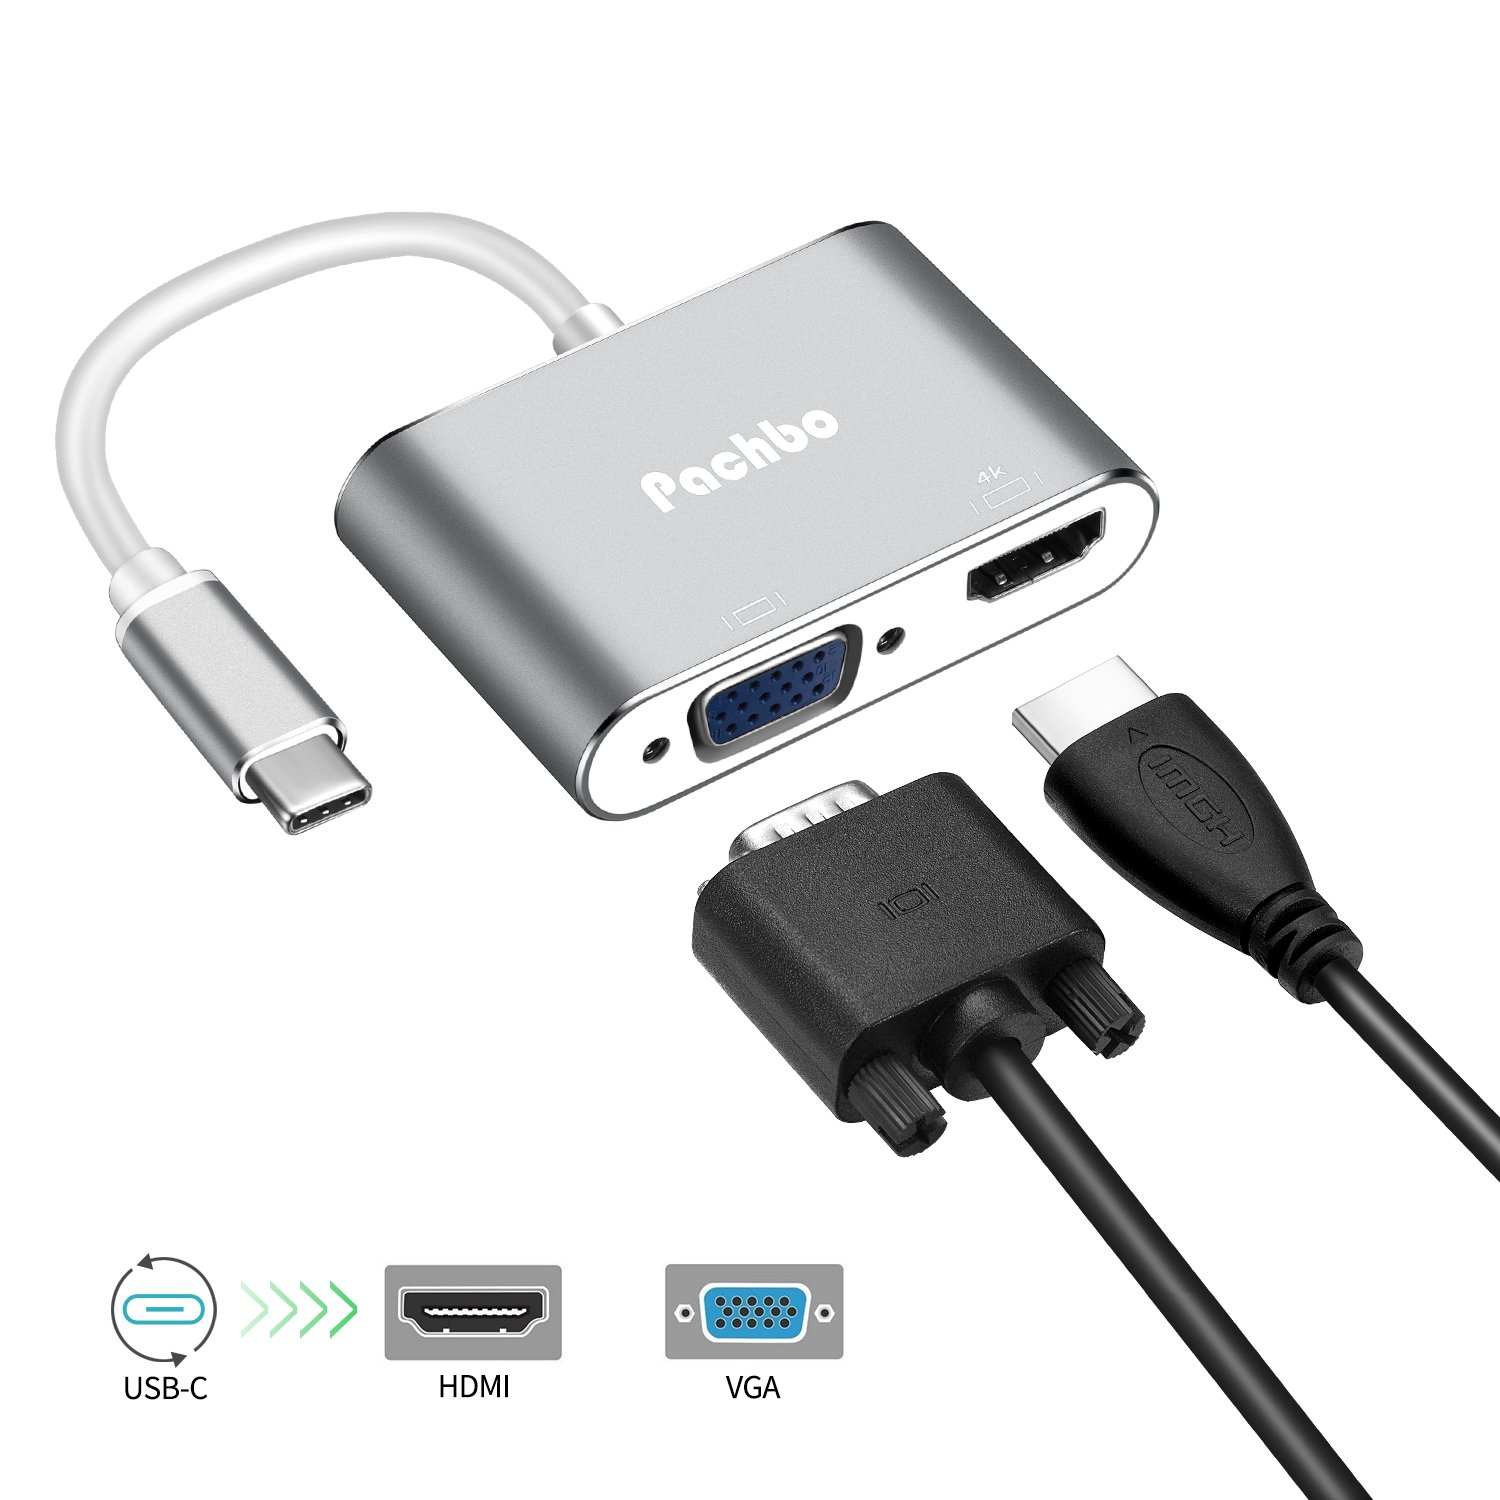 """Pachbo USB-C To HDMI VGA Adapter,2 in 1 USB 3.1 Type-C to VGA HDMI 4K UHD Converter Adapter Dual screen display for MacBook 12""""/MacBook pro 13"""" 2016 2017,Samsung Galaxy S8/S8 Plus/Note 8 and more-gray"""